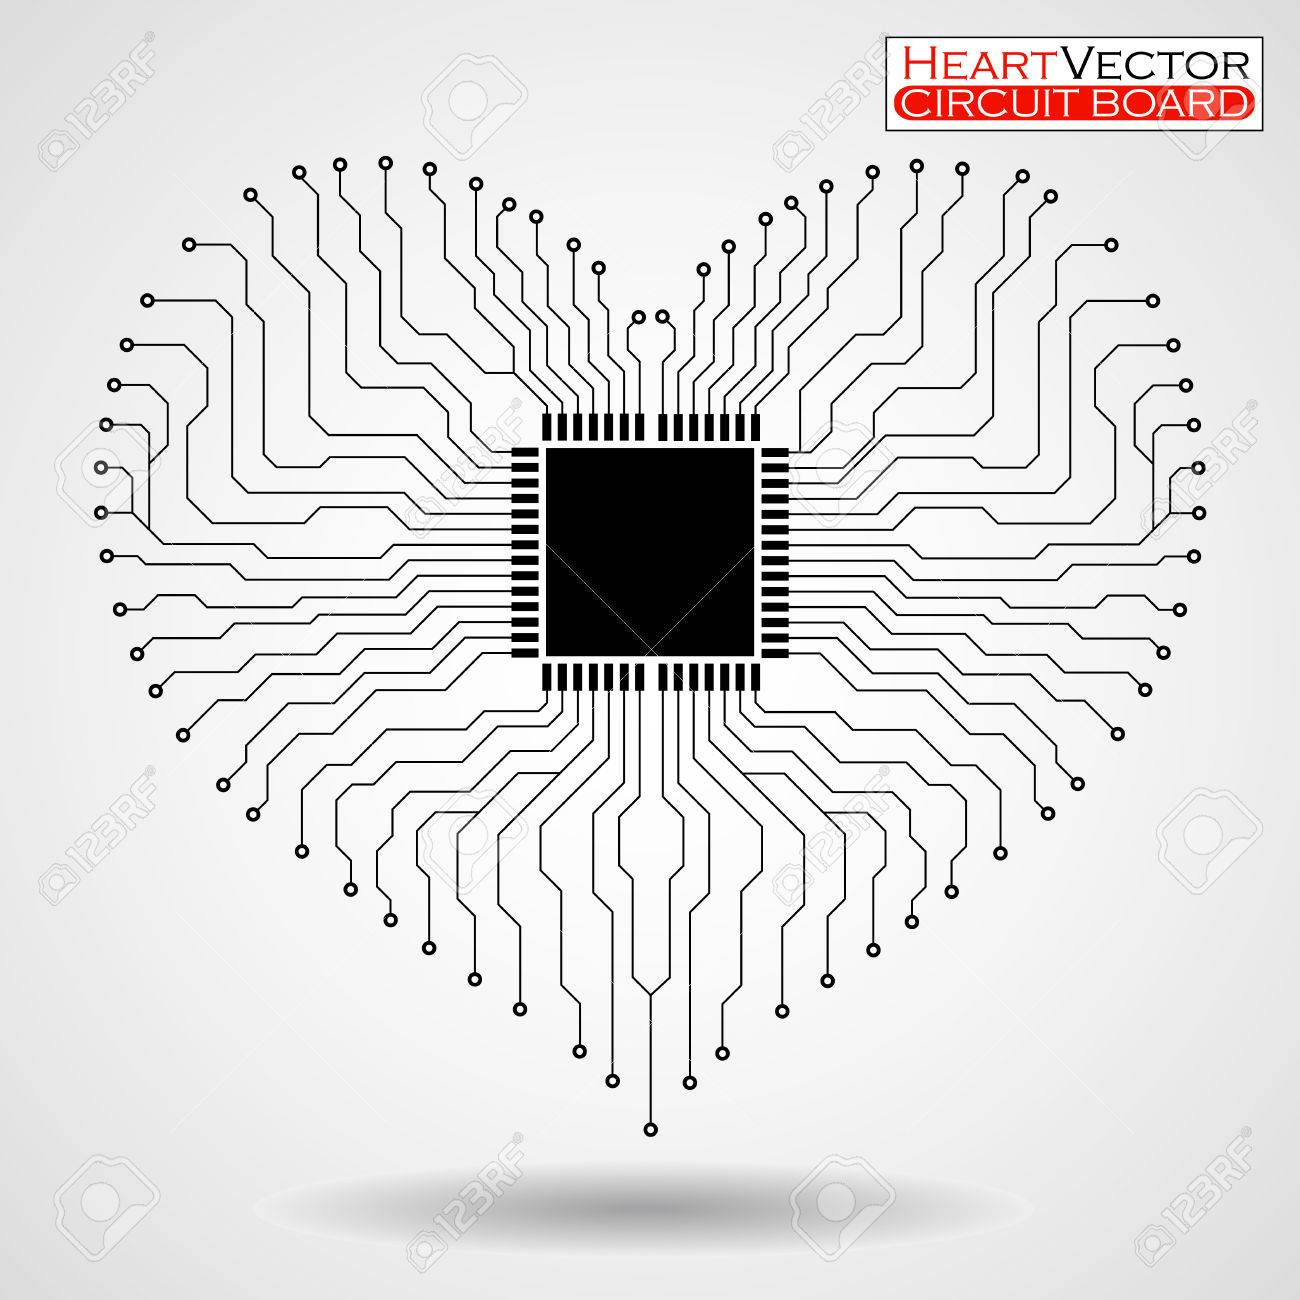 Abstract Electronic Circuit Board In Shape Of Heart Technology Symbols Stock Vector Background Illustration Eps 10